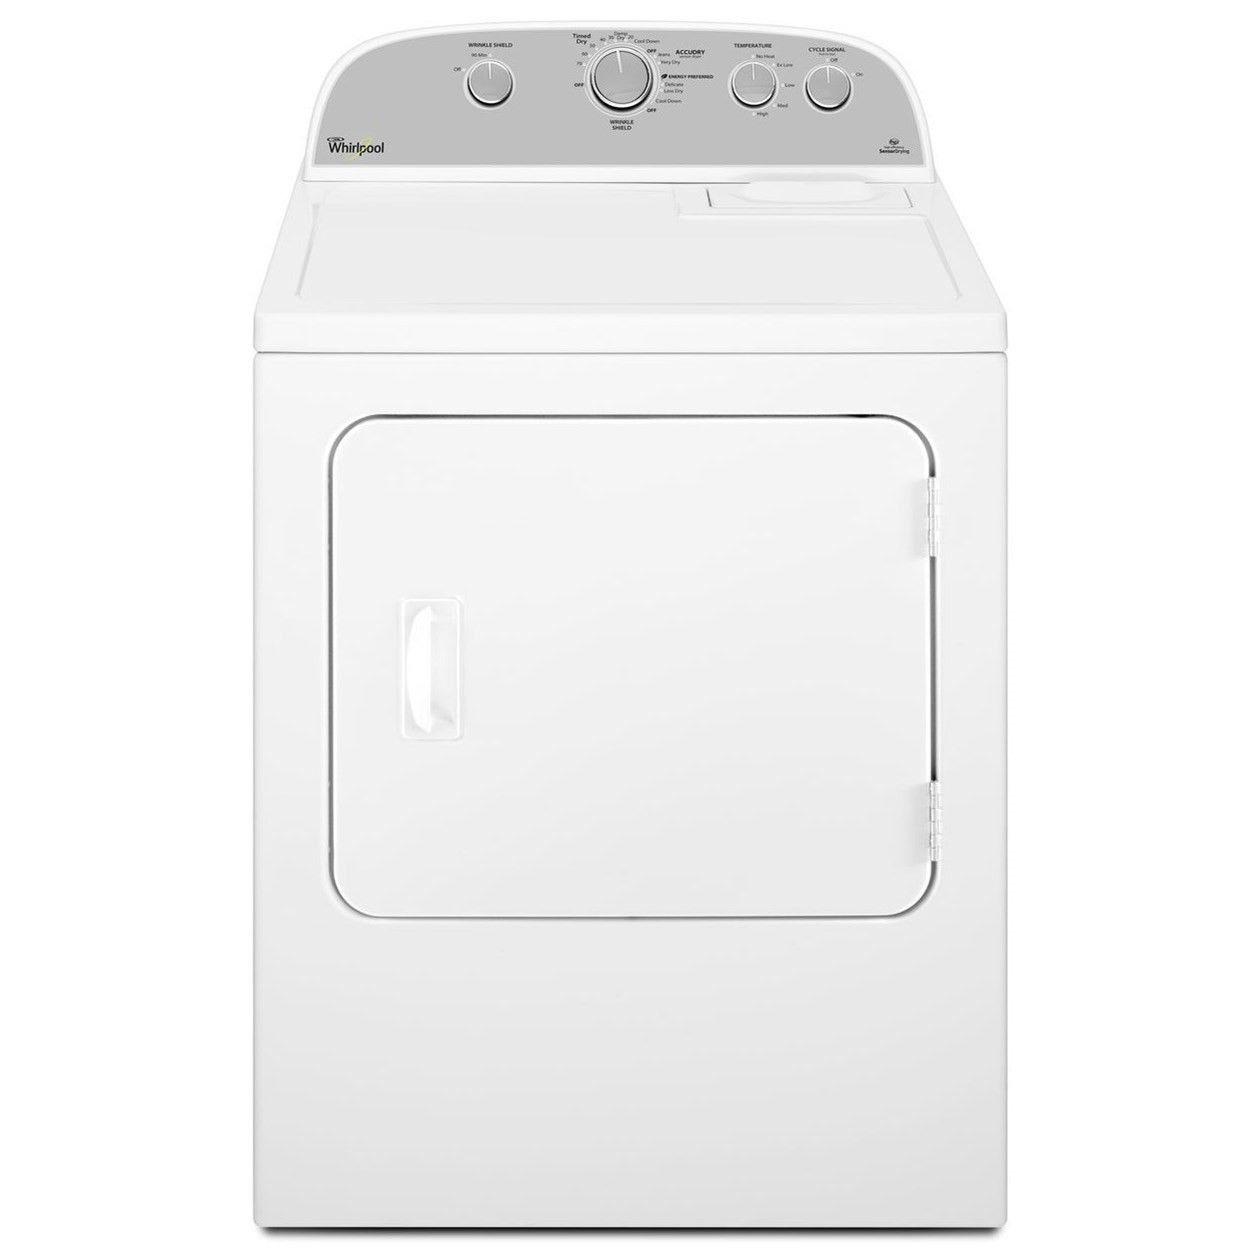 Gas Dryers 5.9 cu. ft. Top Load Gas Dryer by Whirlpool at Furniture and ApplianceMart